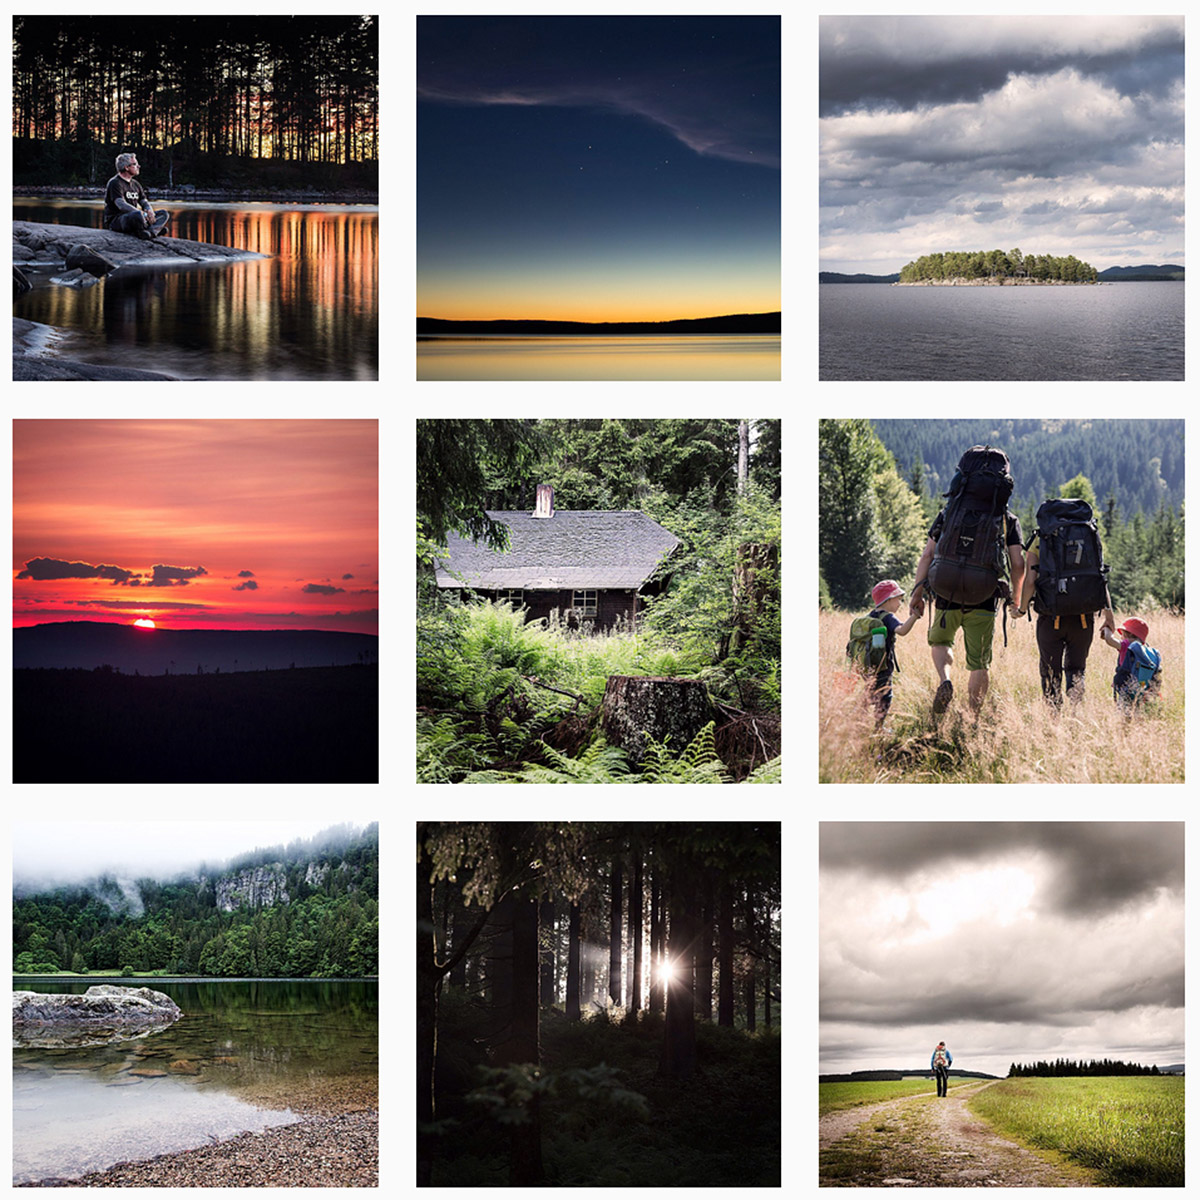 Outdoorhighlights auf Instagram